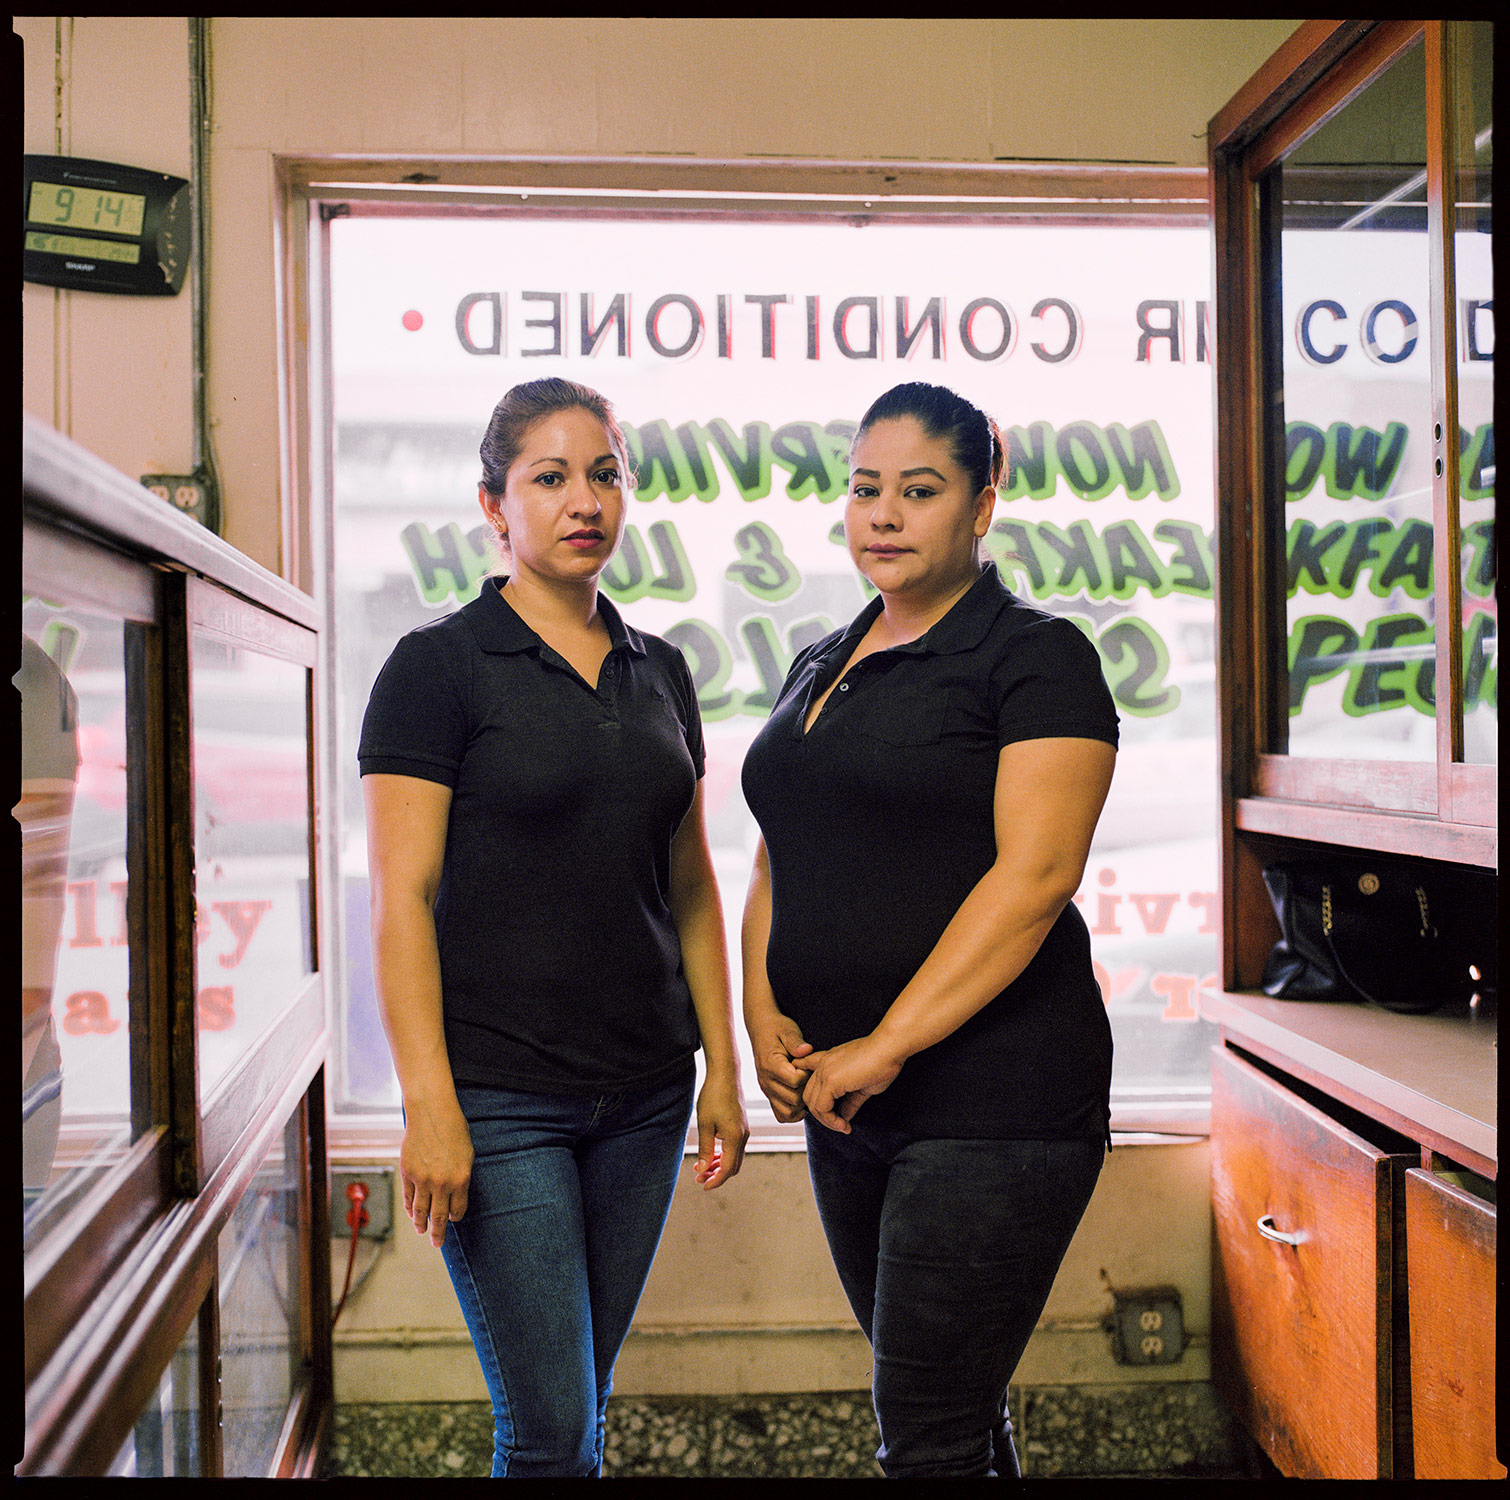 Waitresses at historic Rex Cafe - Texas Rio Grande Valley